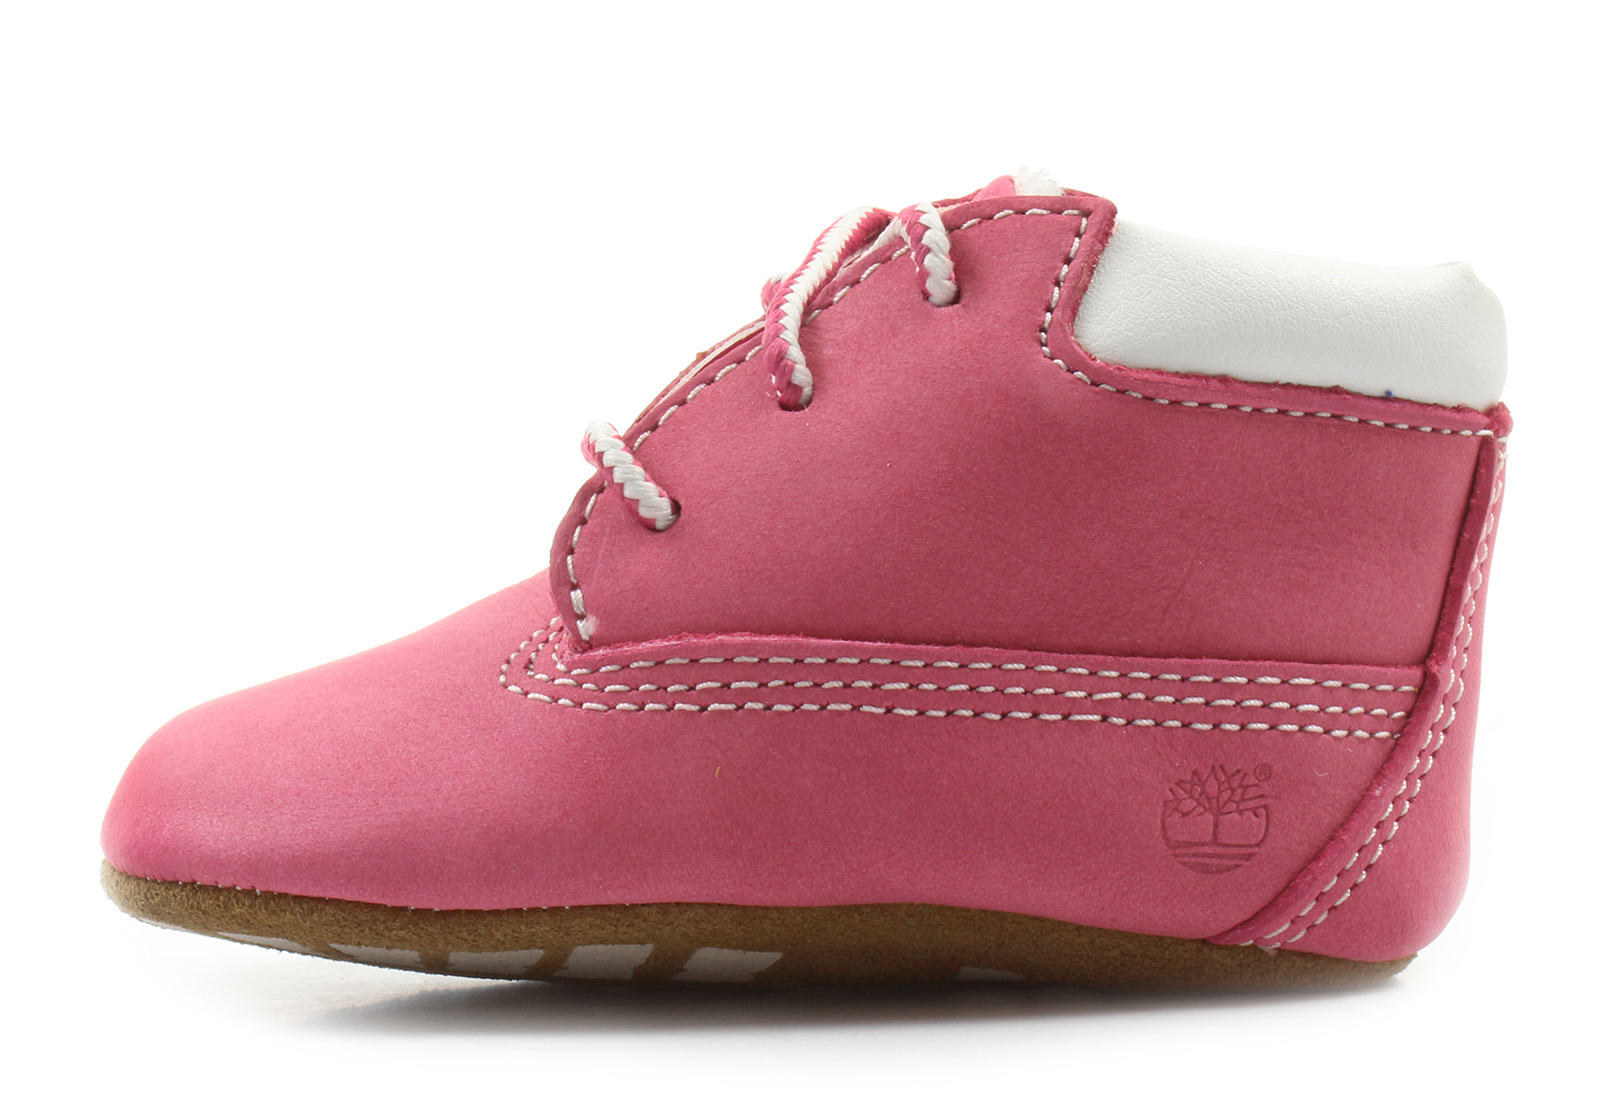 Timberland Topánky - Crib Bootie With Hat - 9680R-pnk - Tenisky ... 4cfb7c1ecde